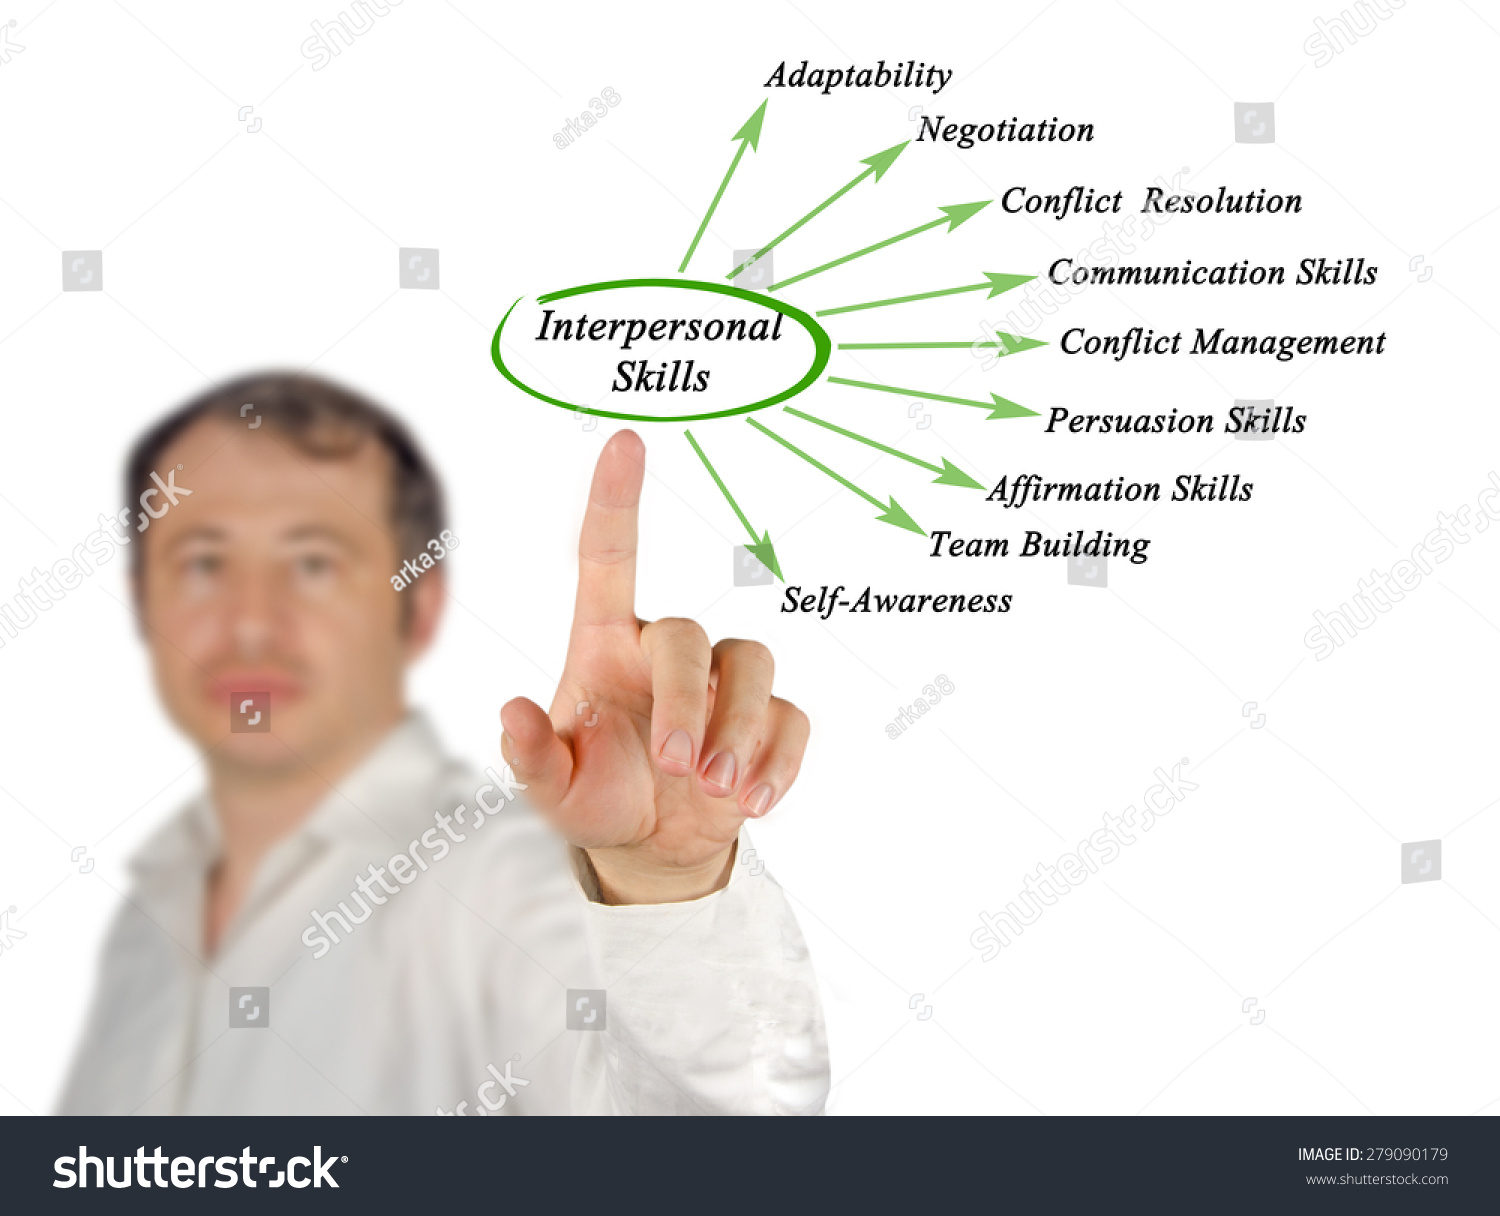 interpersonal skills stock photo shutterstock